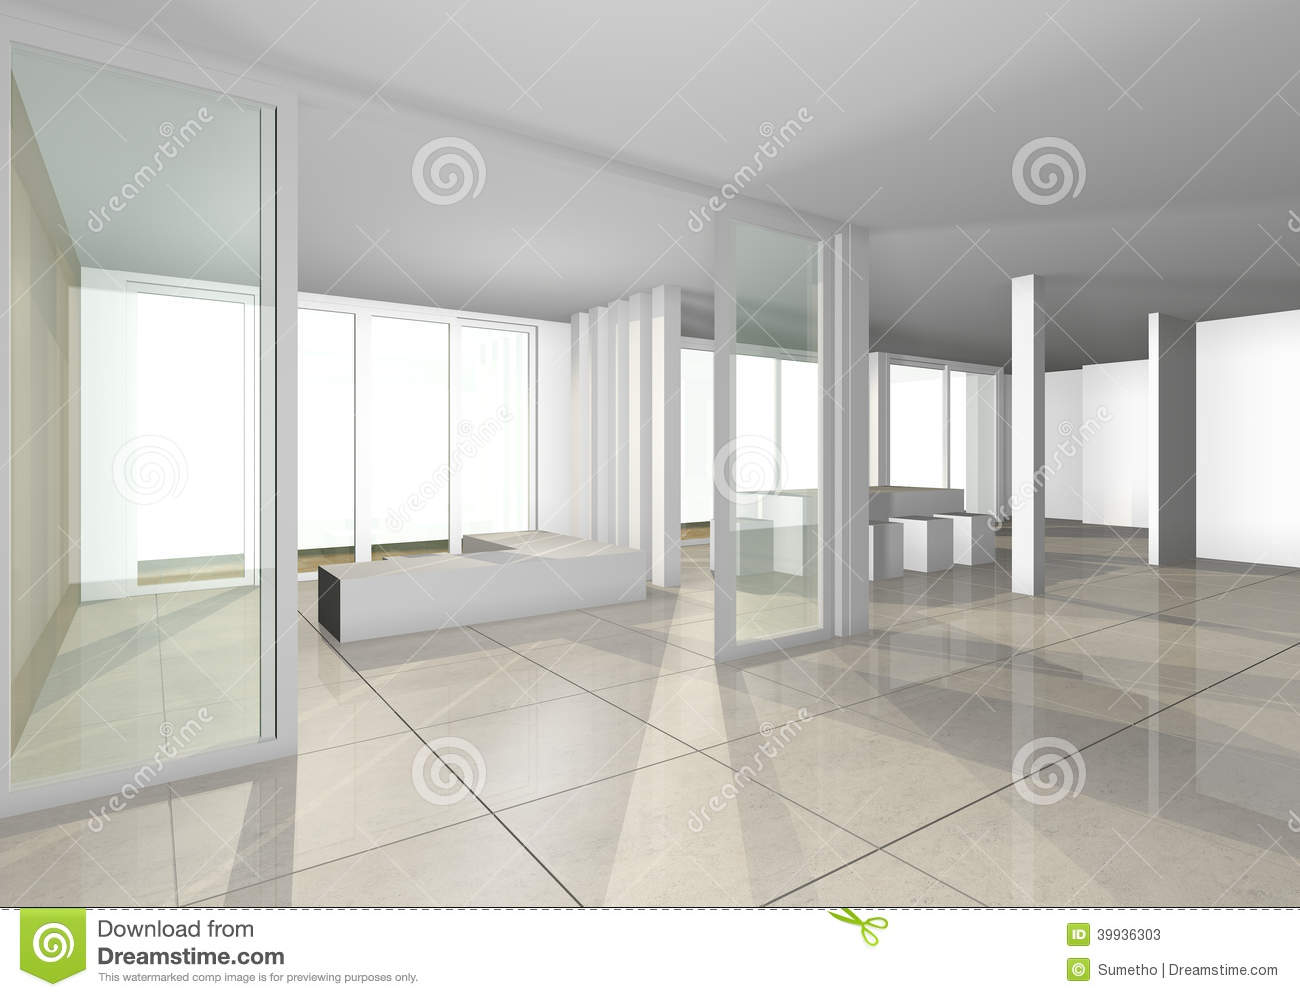 Space interior design stock illustration image 39936303 for 4 space interior design